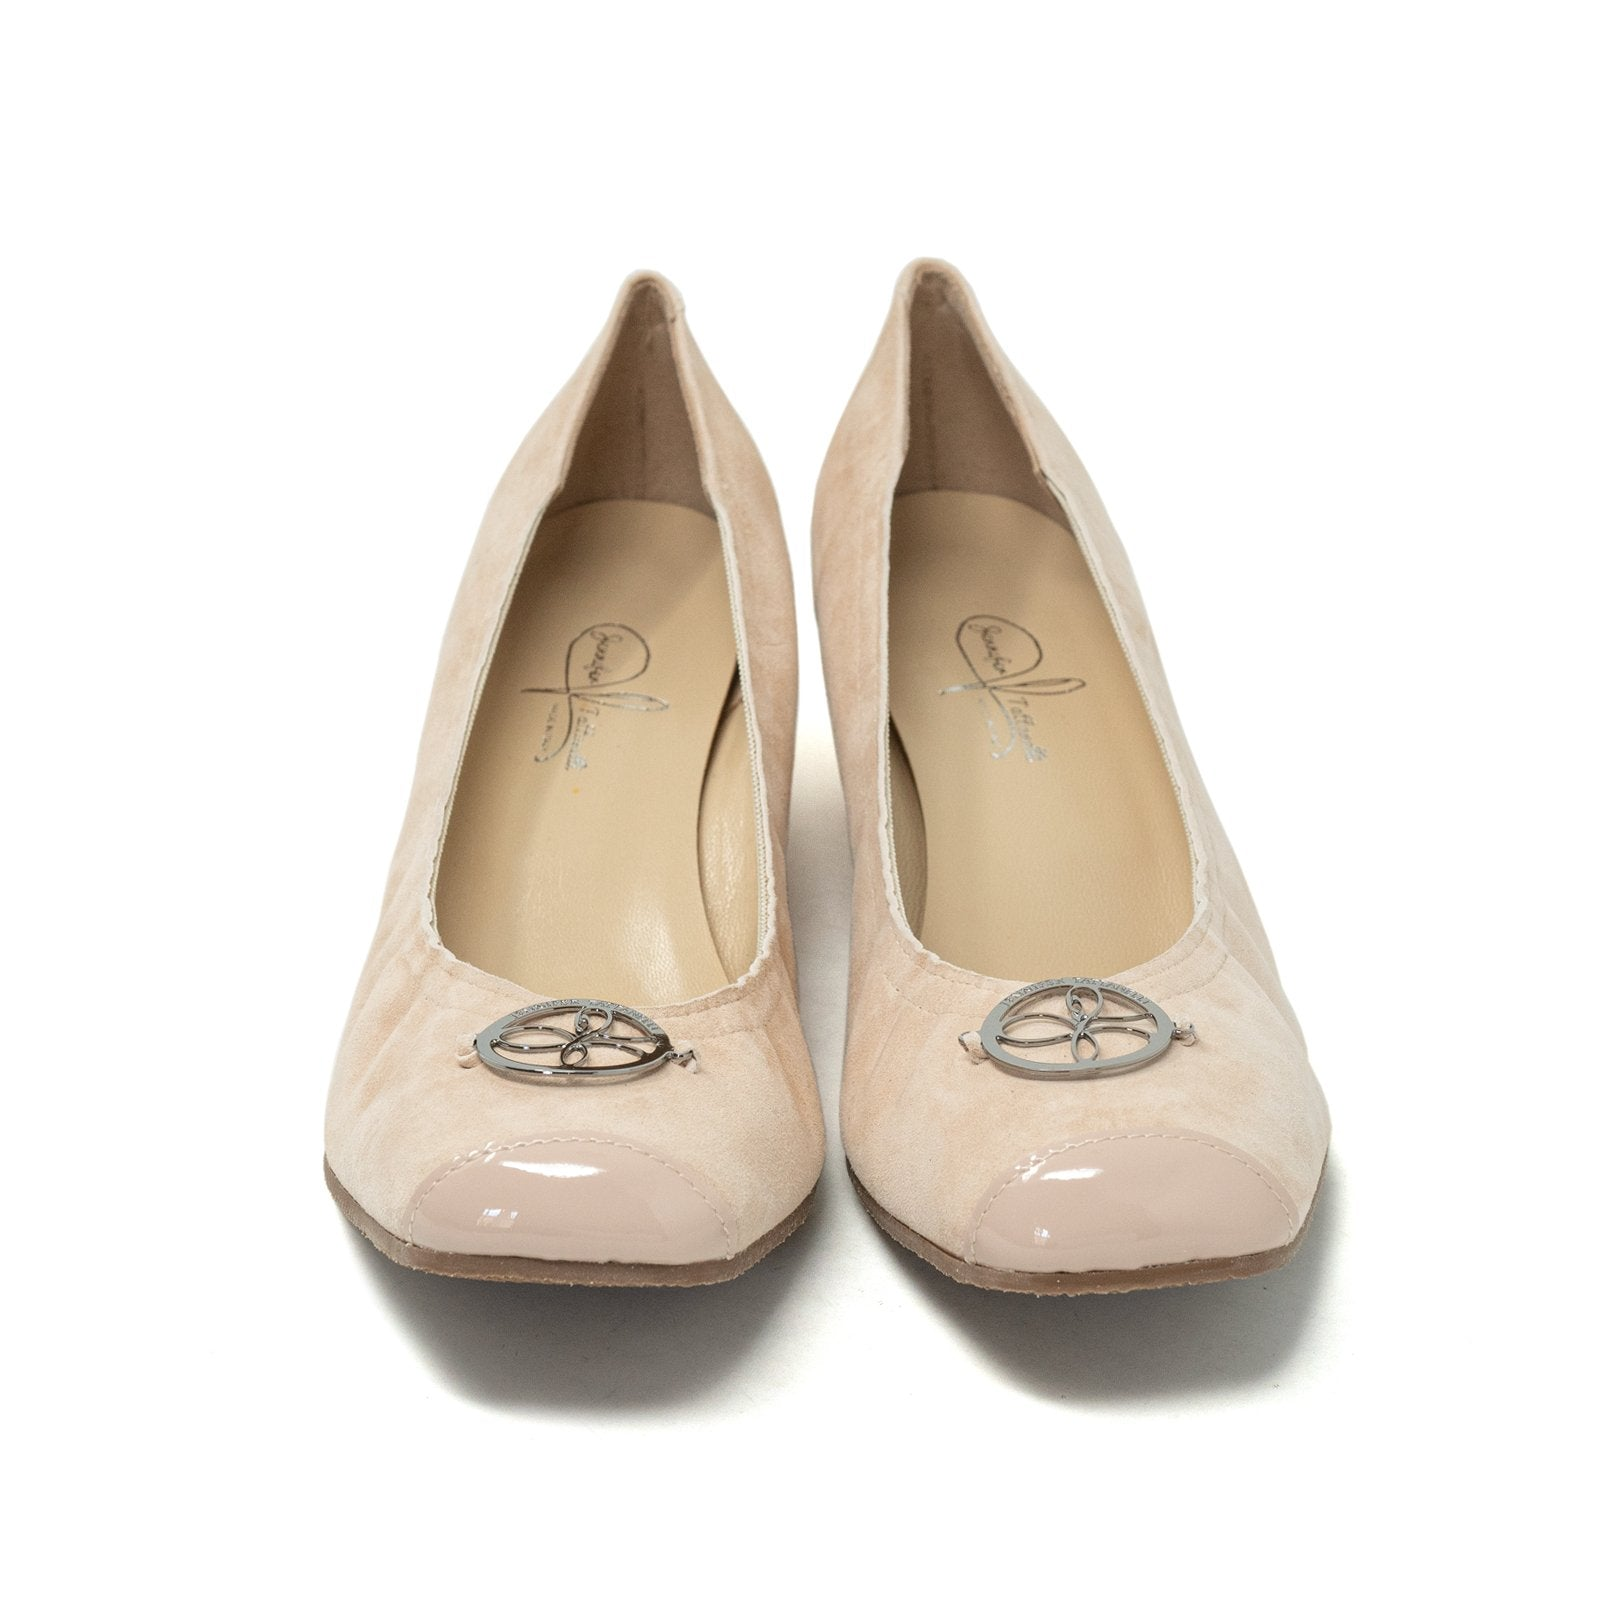 Women Ballerina Shoes with Wedge in Suede Nude - Jennifer Tattanelli